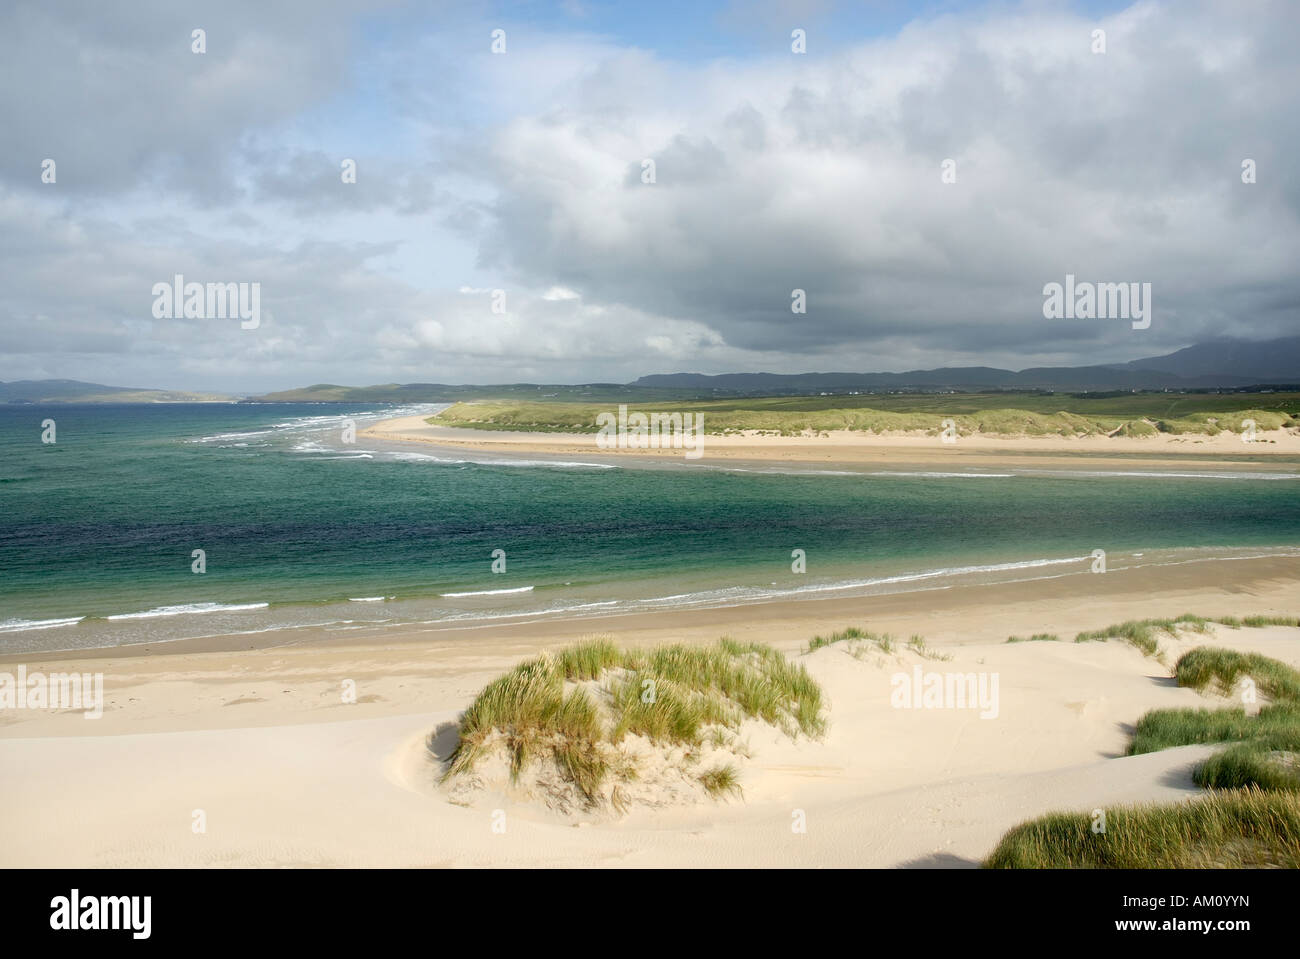 Coastal scenery with sandy beaches and moving clouds at the Atlanic shore of of Co Donegal, Ireland - Stock Image